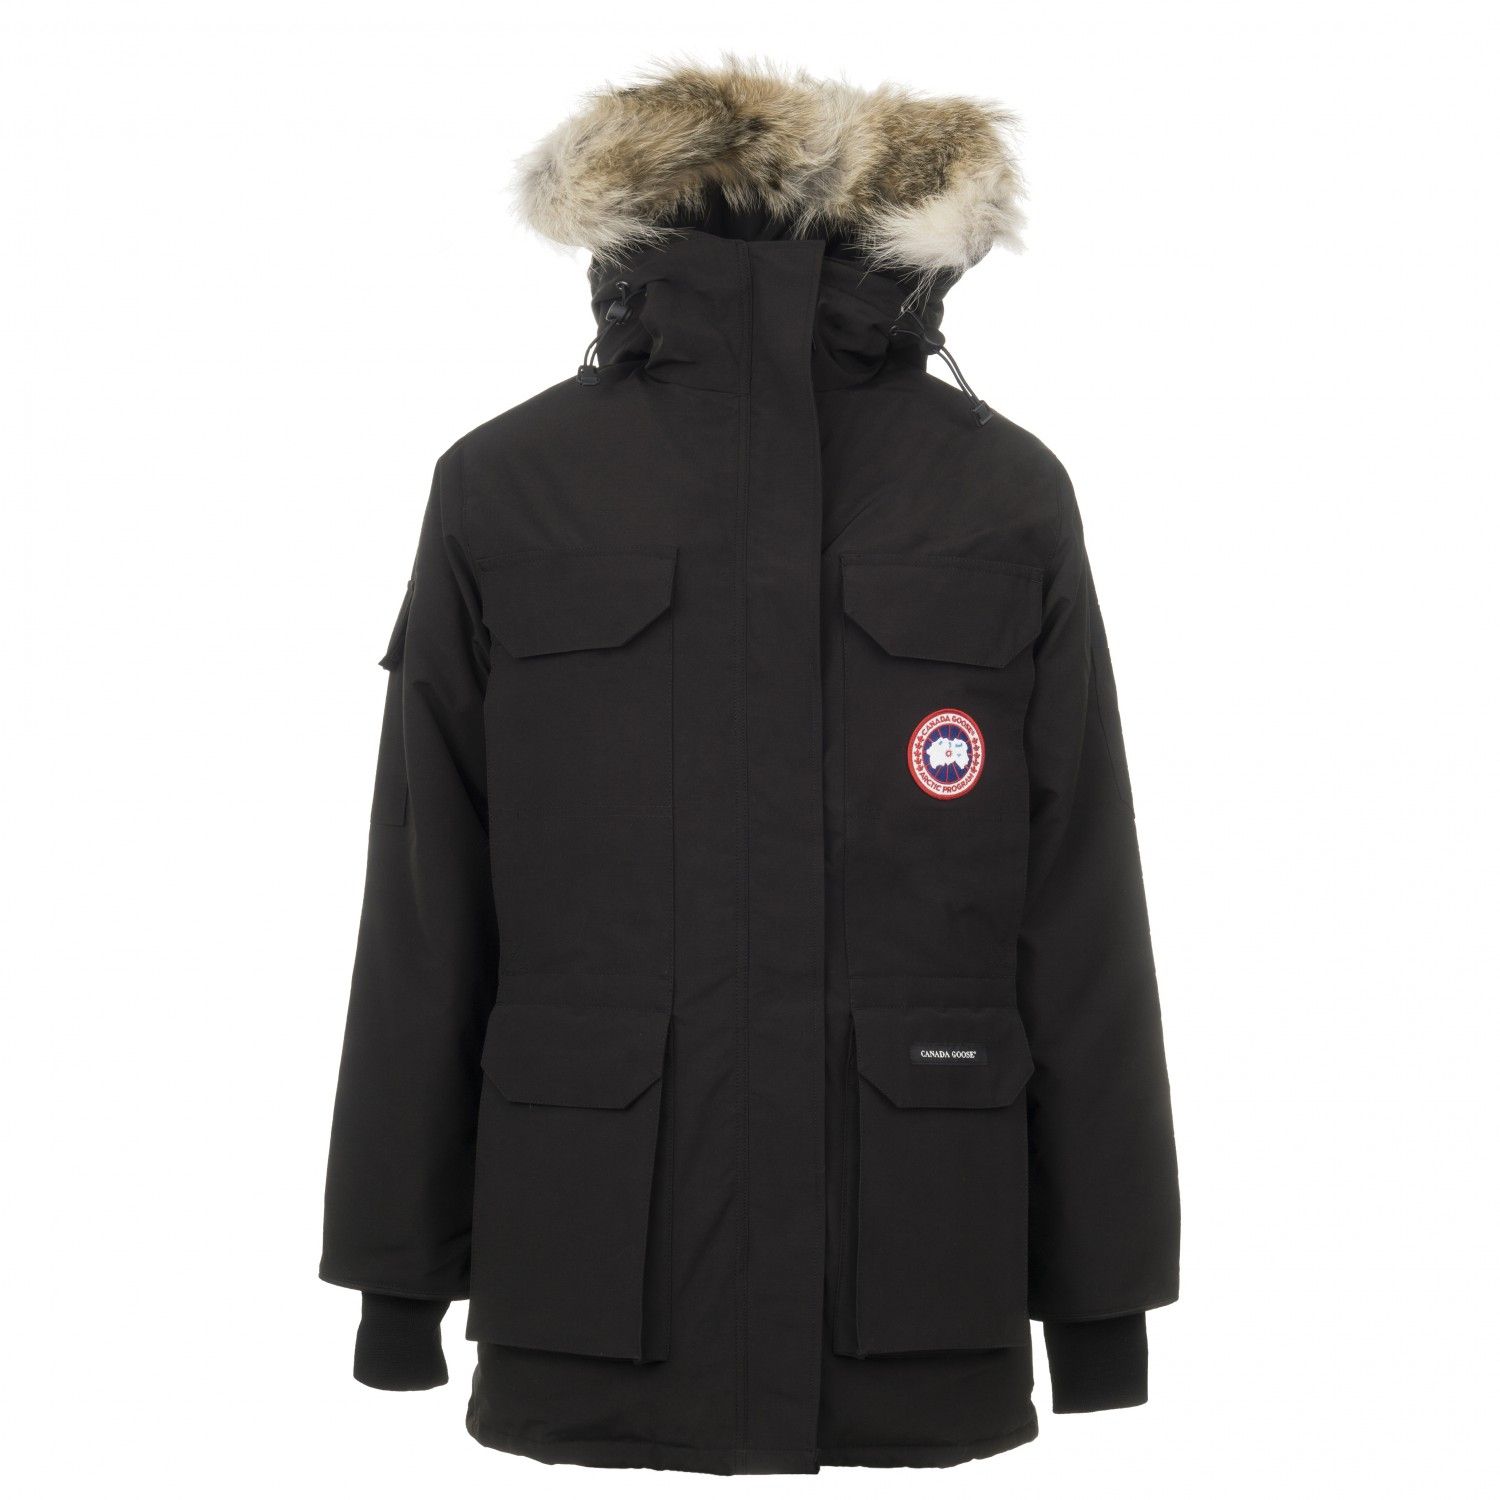 8874b0dbf8 Canada Goose - Women's Expedition Parka - Giacca invernale - Blue Camo | XS